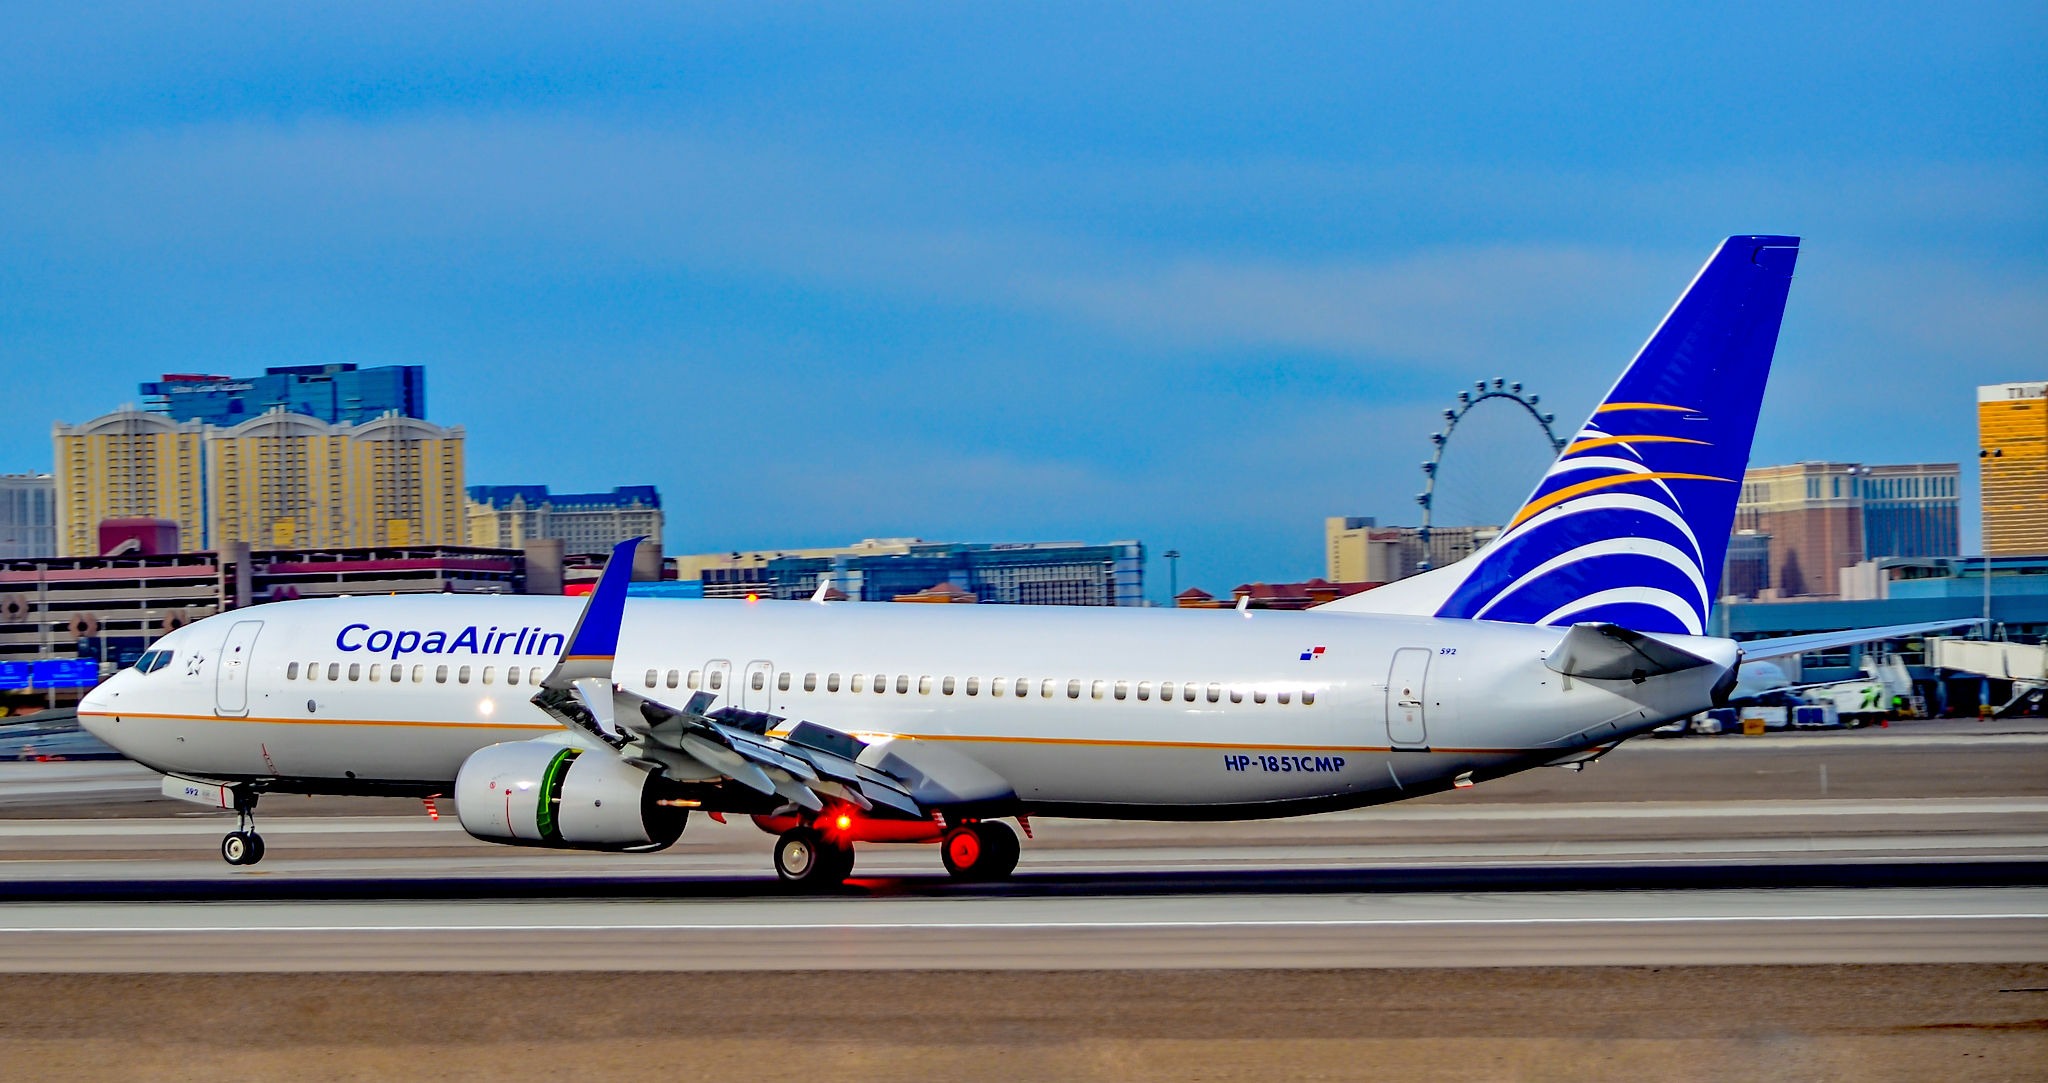 file hp 1851cmp copa airlines 2015 boeing 737 8v3 wl serial 44153 rh commons wikimedia org